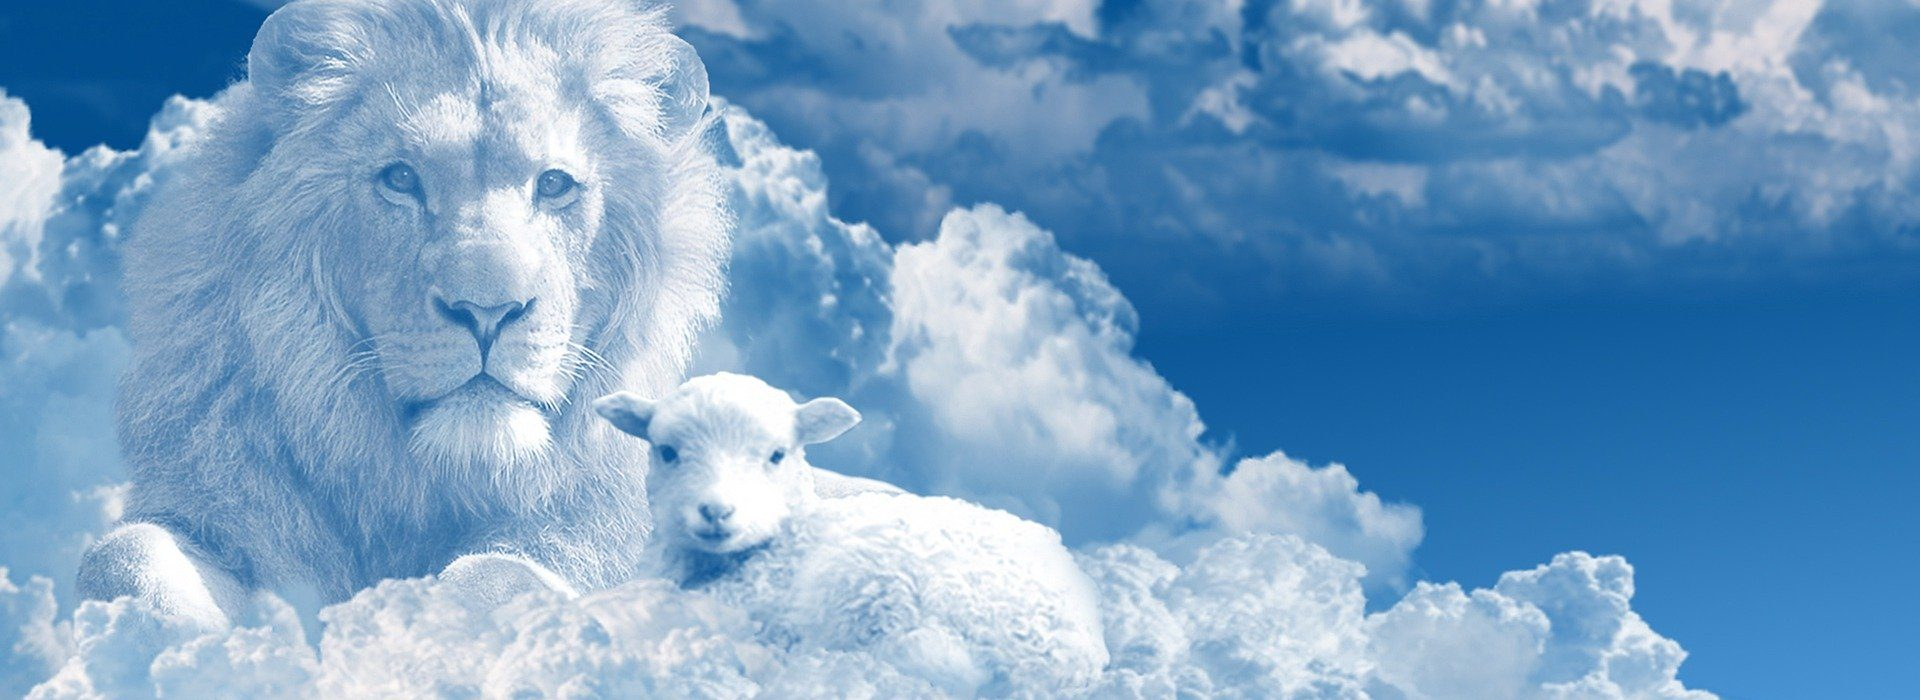 The wolf also shall dwell with the lamb